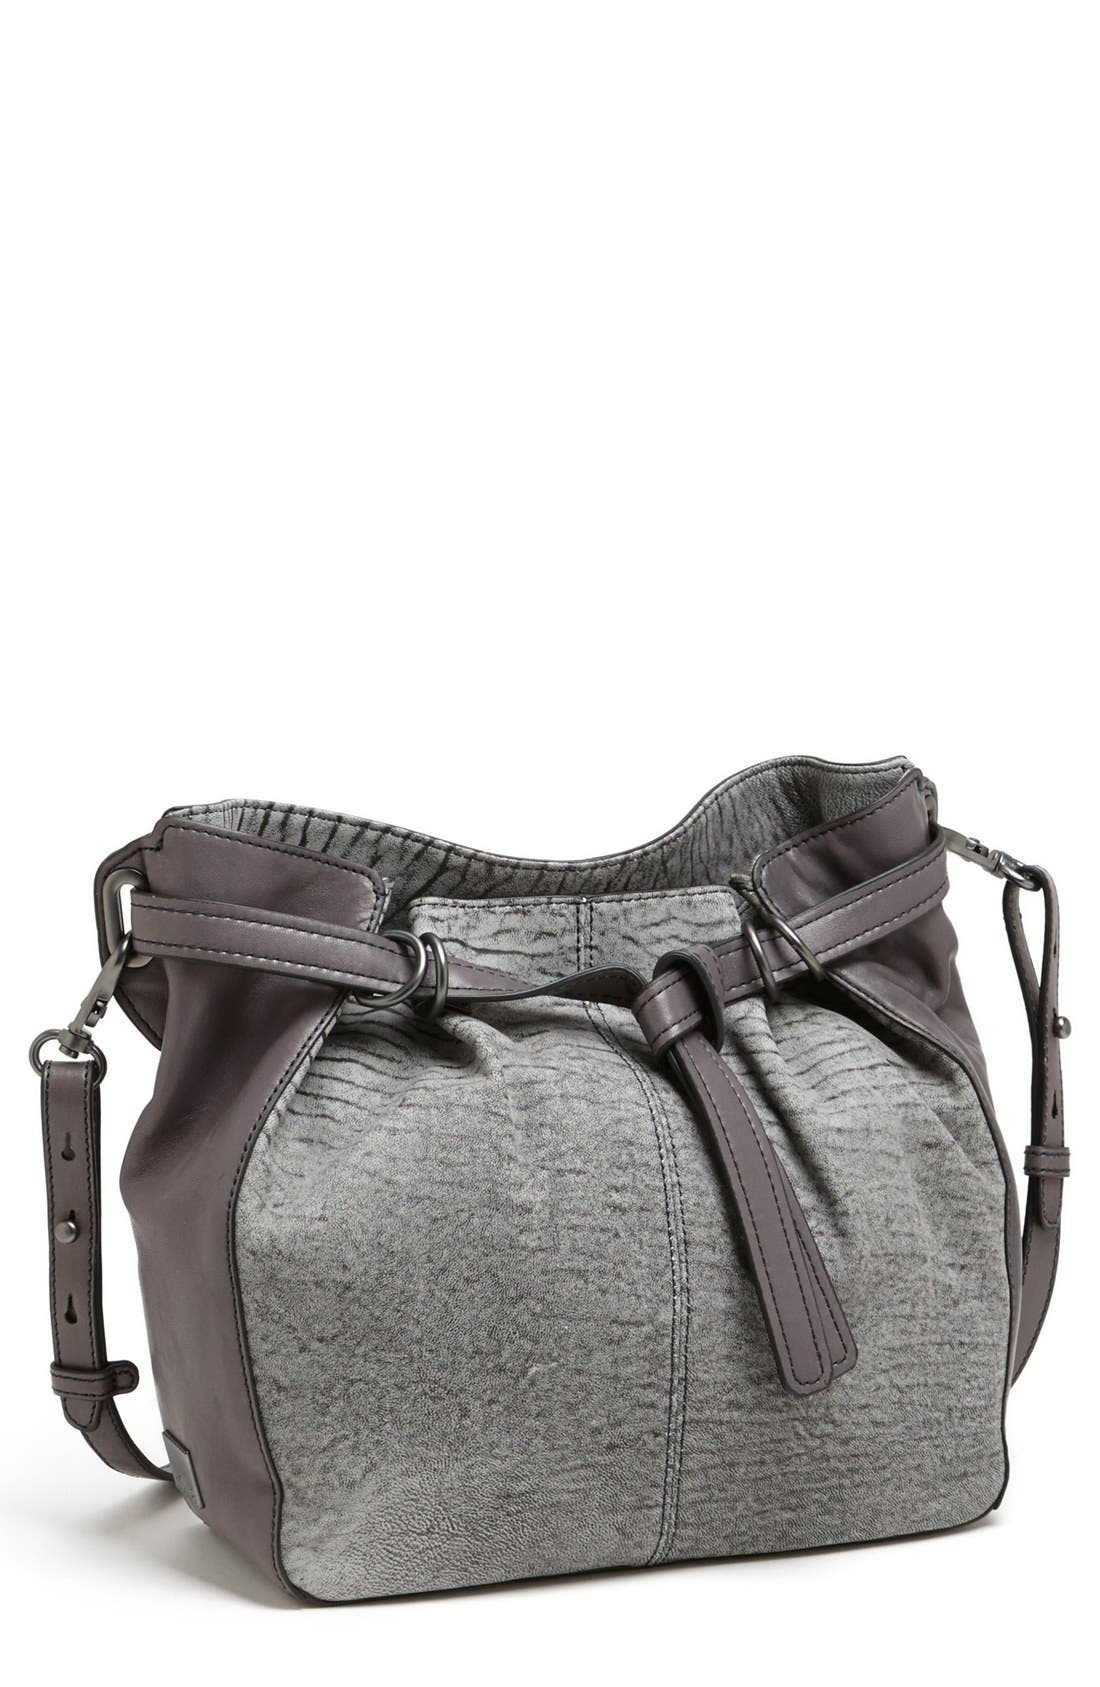 Alternate Image 1 Selected - Kooba 'Bailey' Leather Crossbody Bag